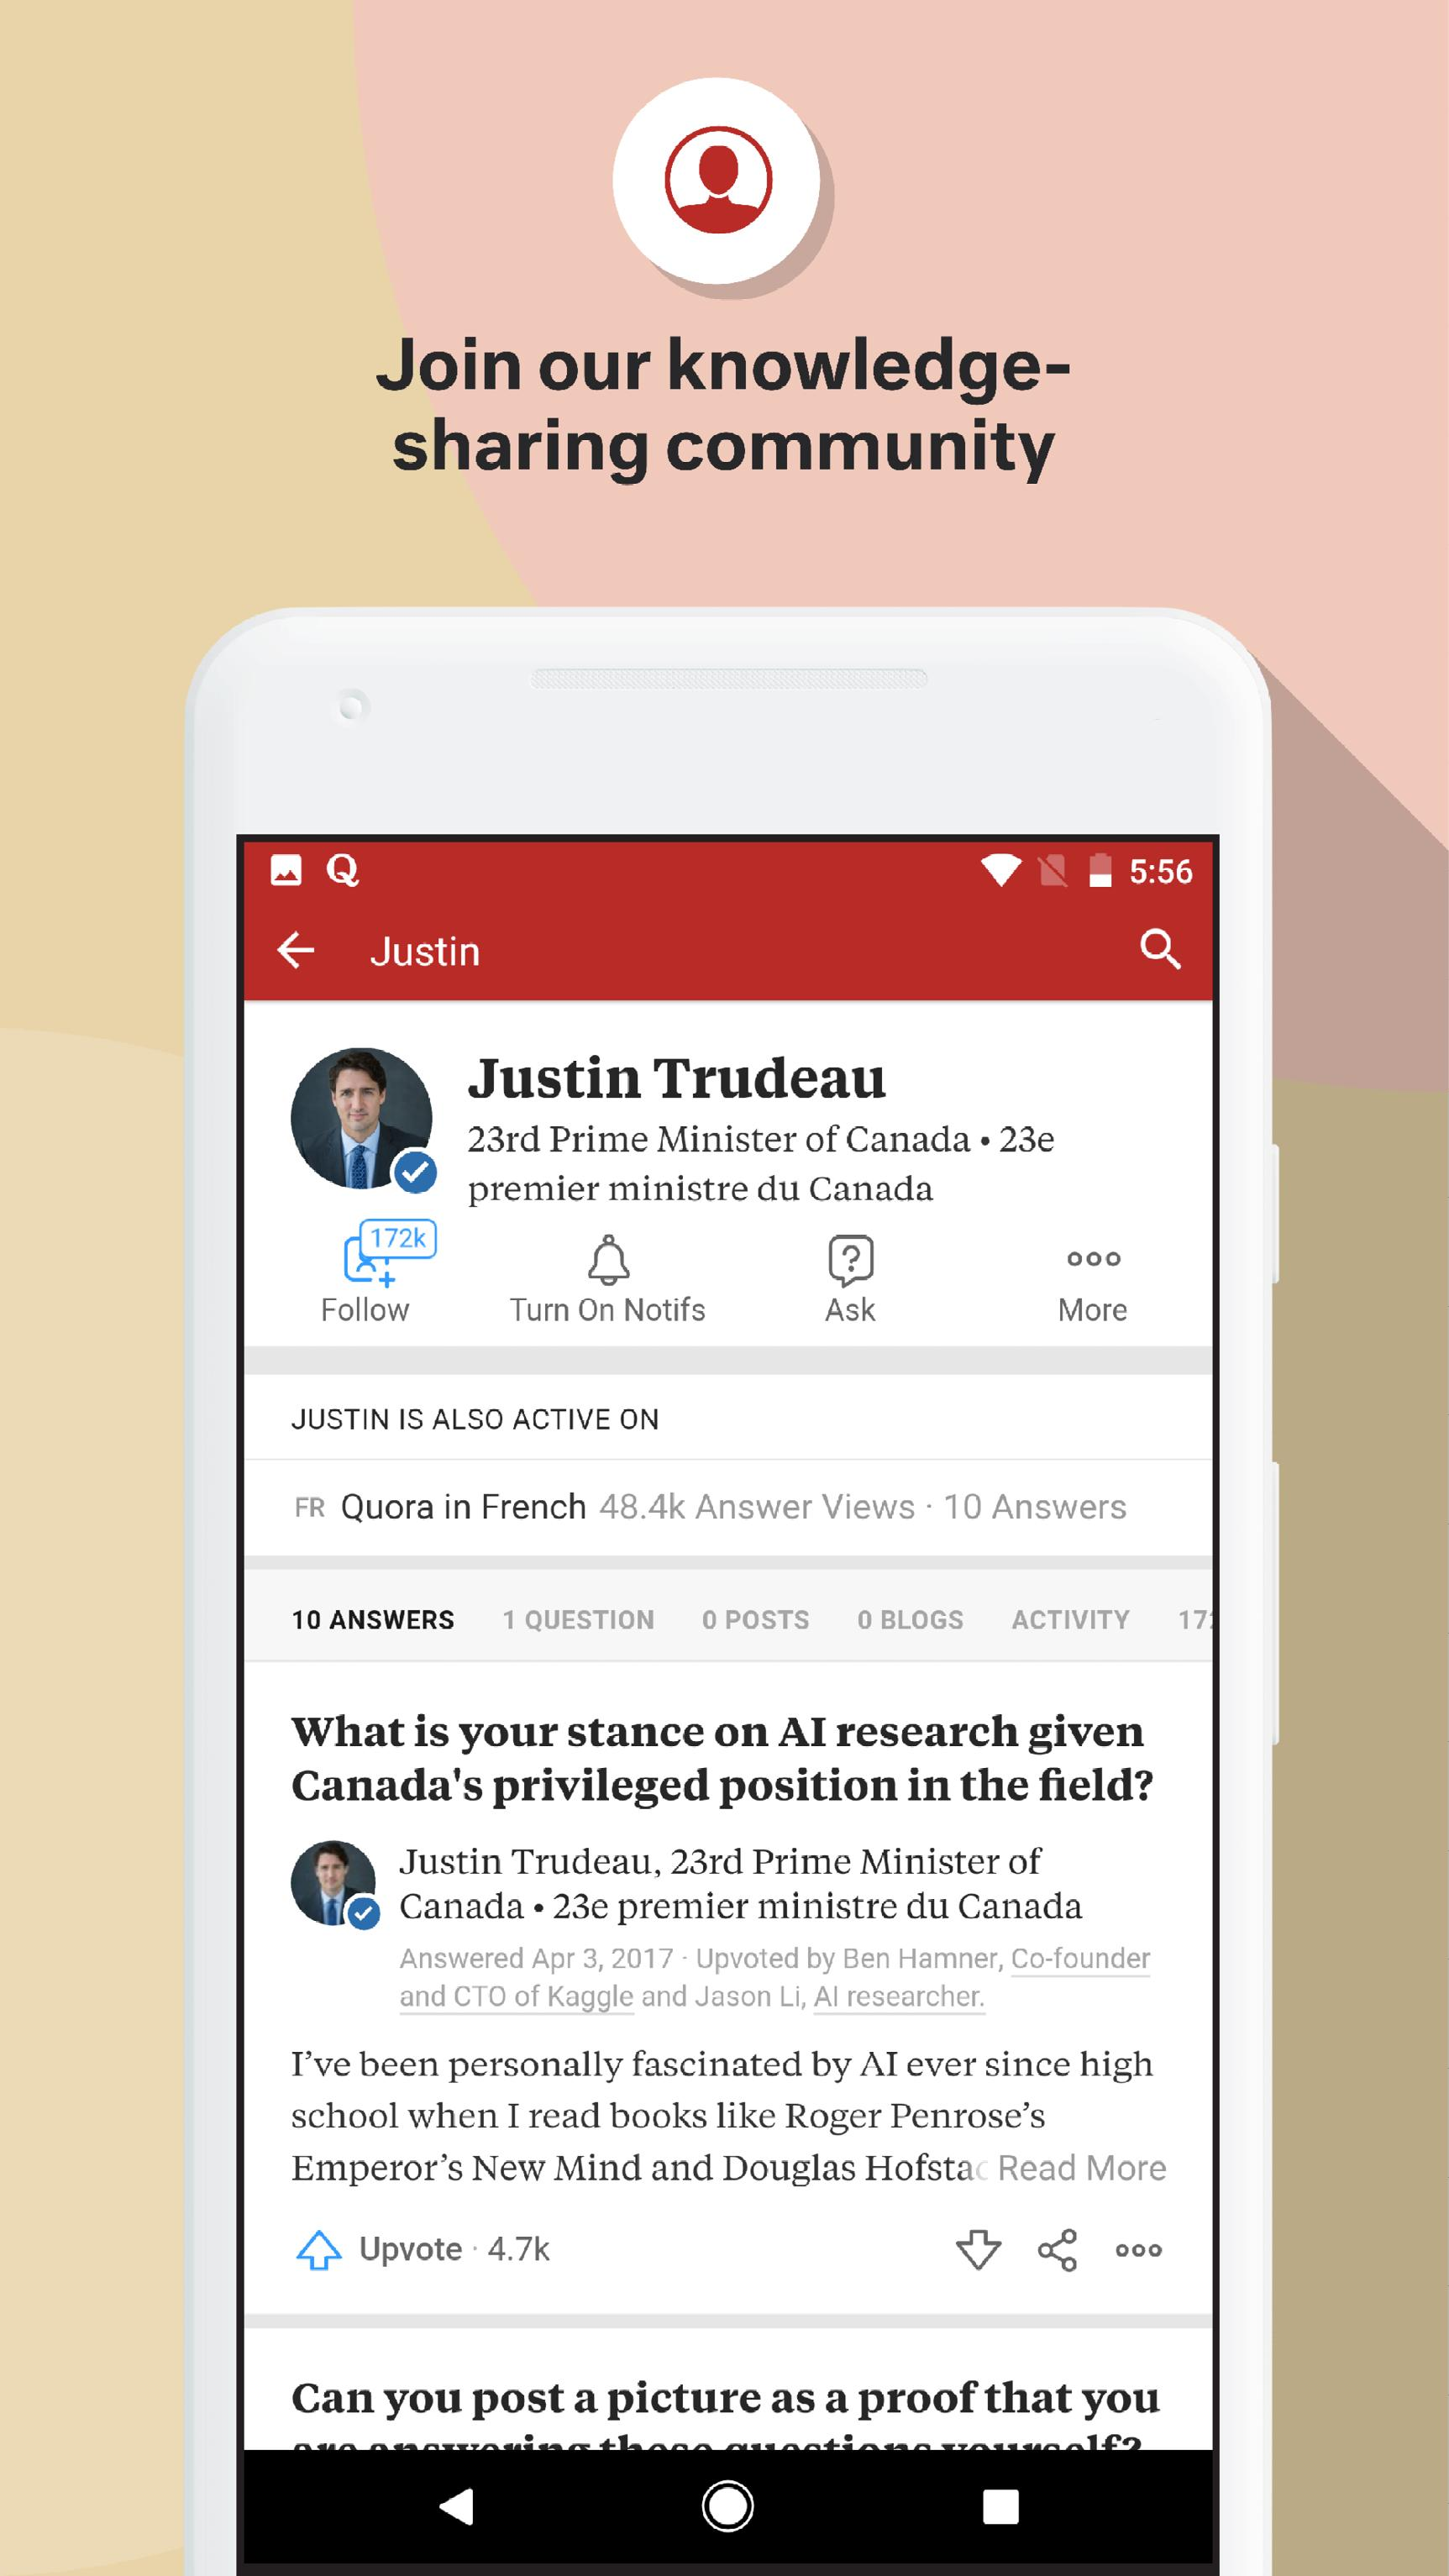 Quora — Questions, Answers, and More 2.8.31 Screenshot 6